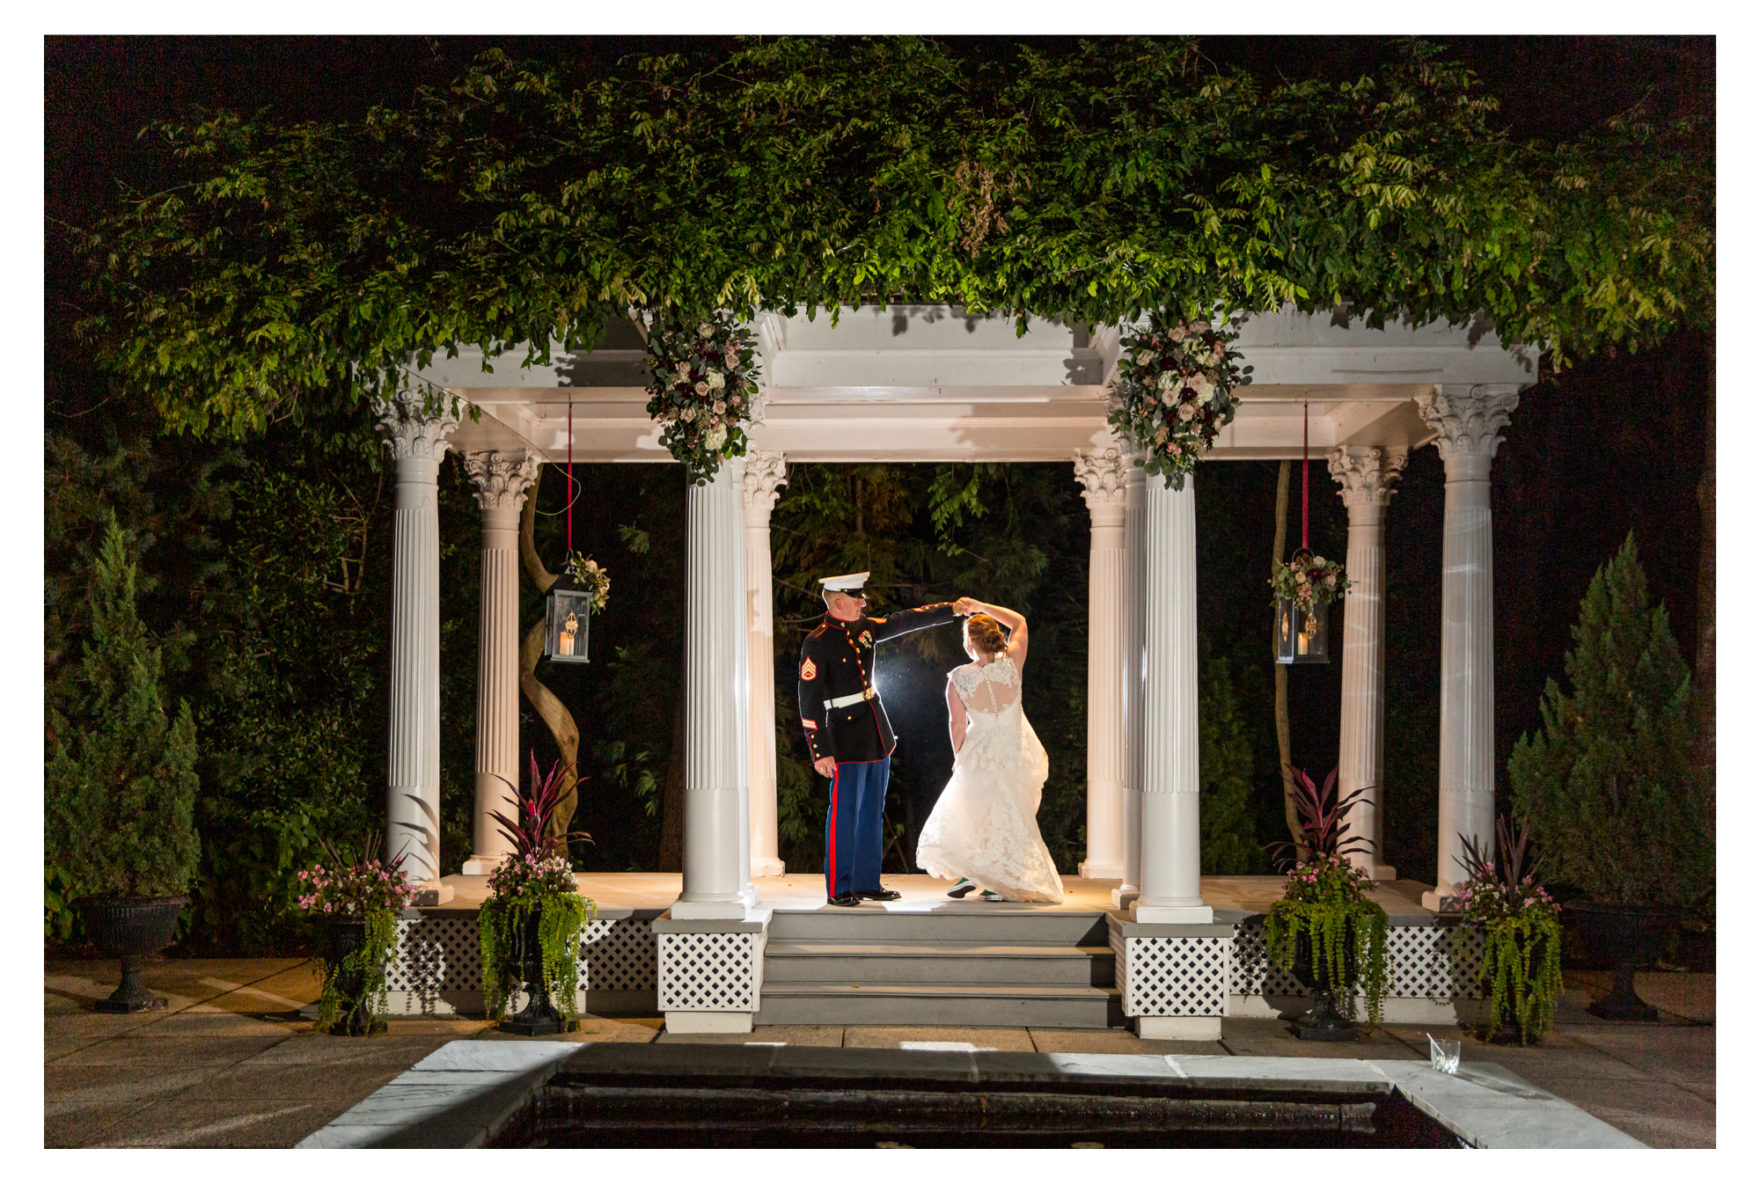 Frederick Wedding Photographer, Frederick Wedding, Ceresville Mansion Wedding, Fall Wedding, Burgundy Wedding, Outdoor Wedding, Military Wedding, Marine Wedding,  Night Photography